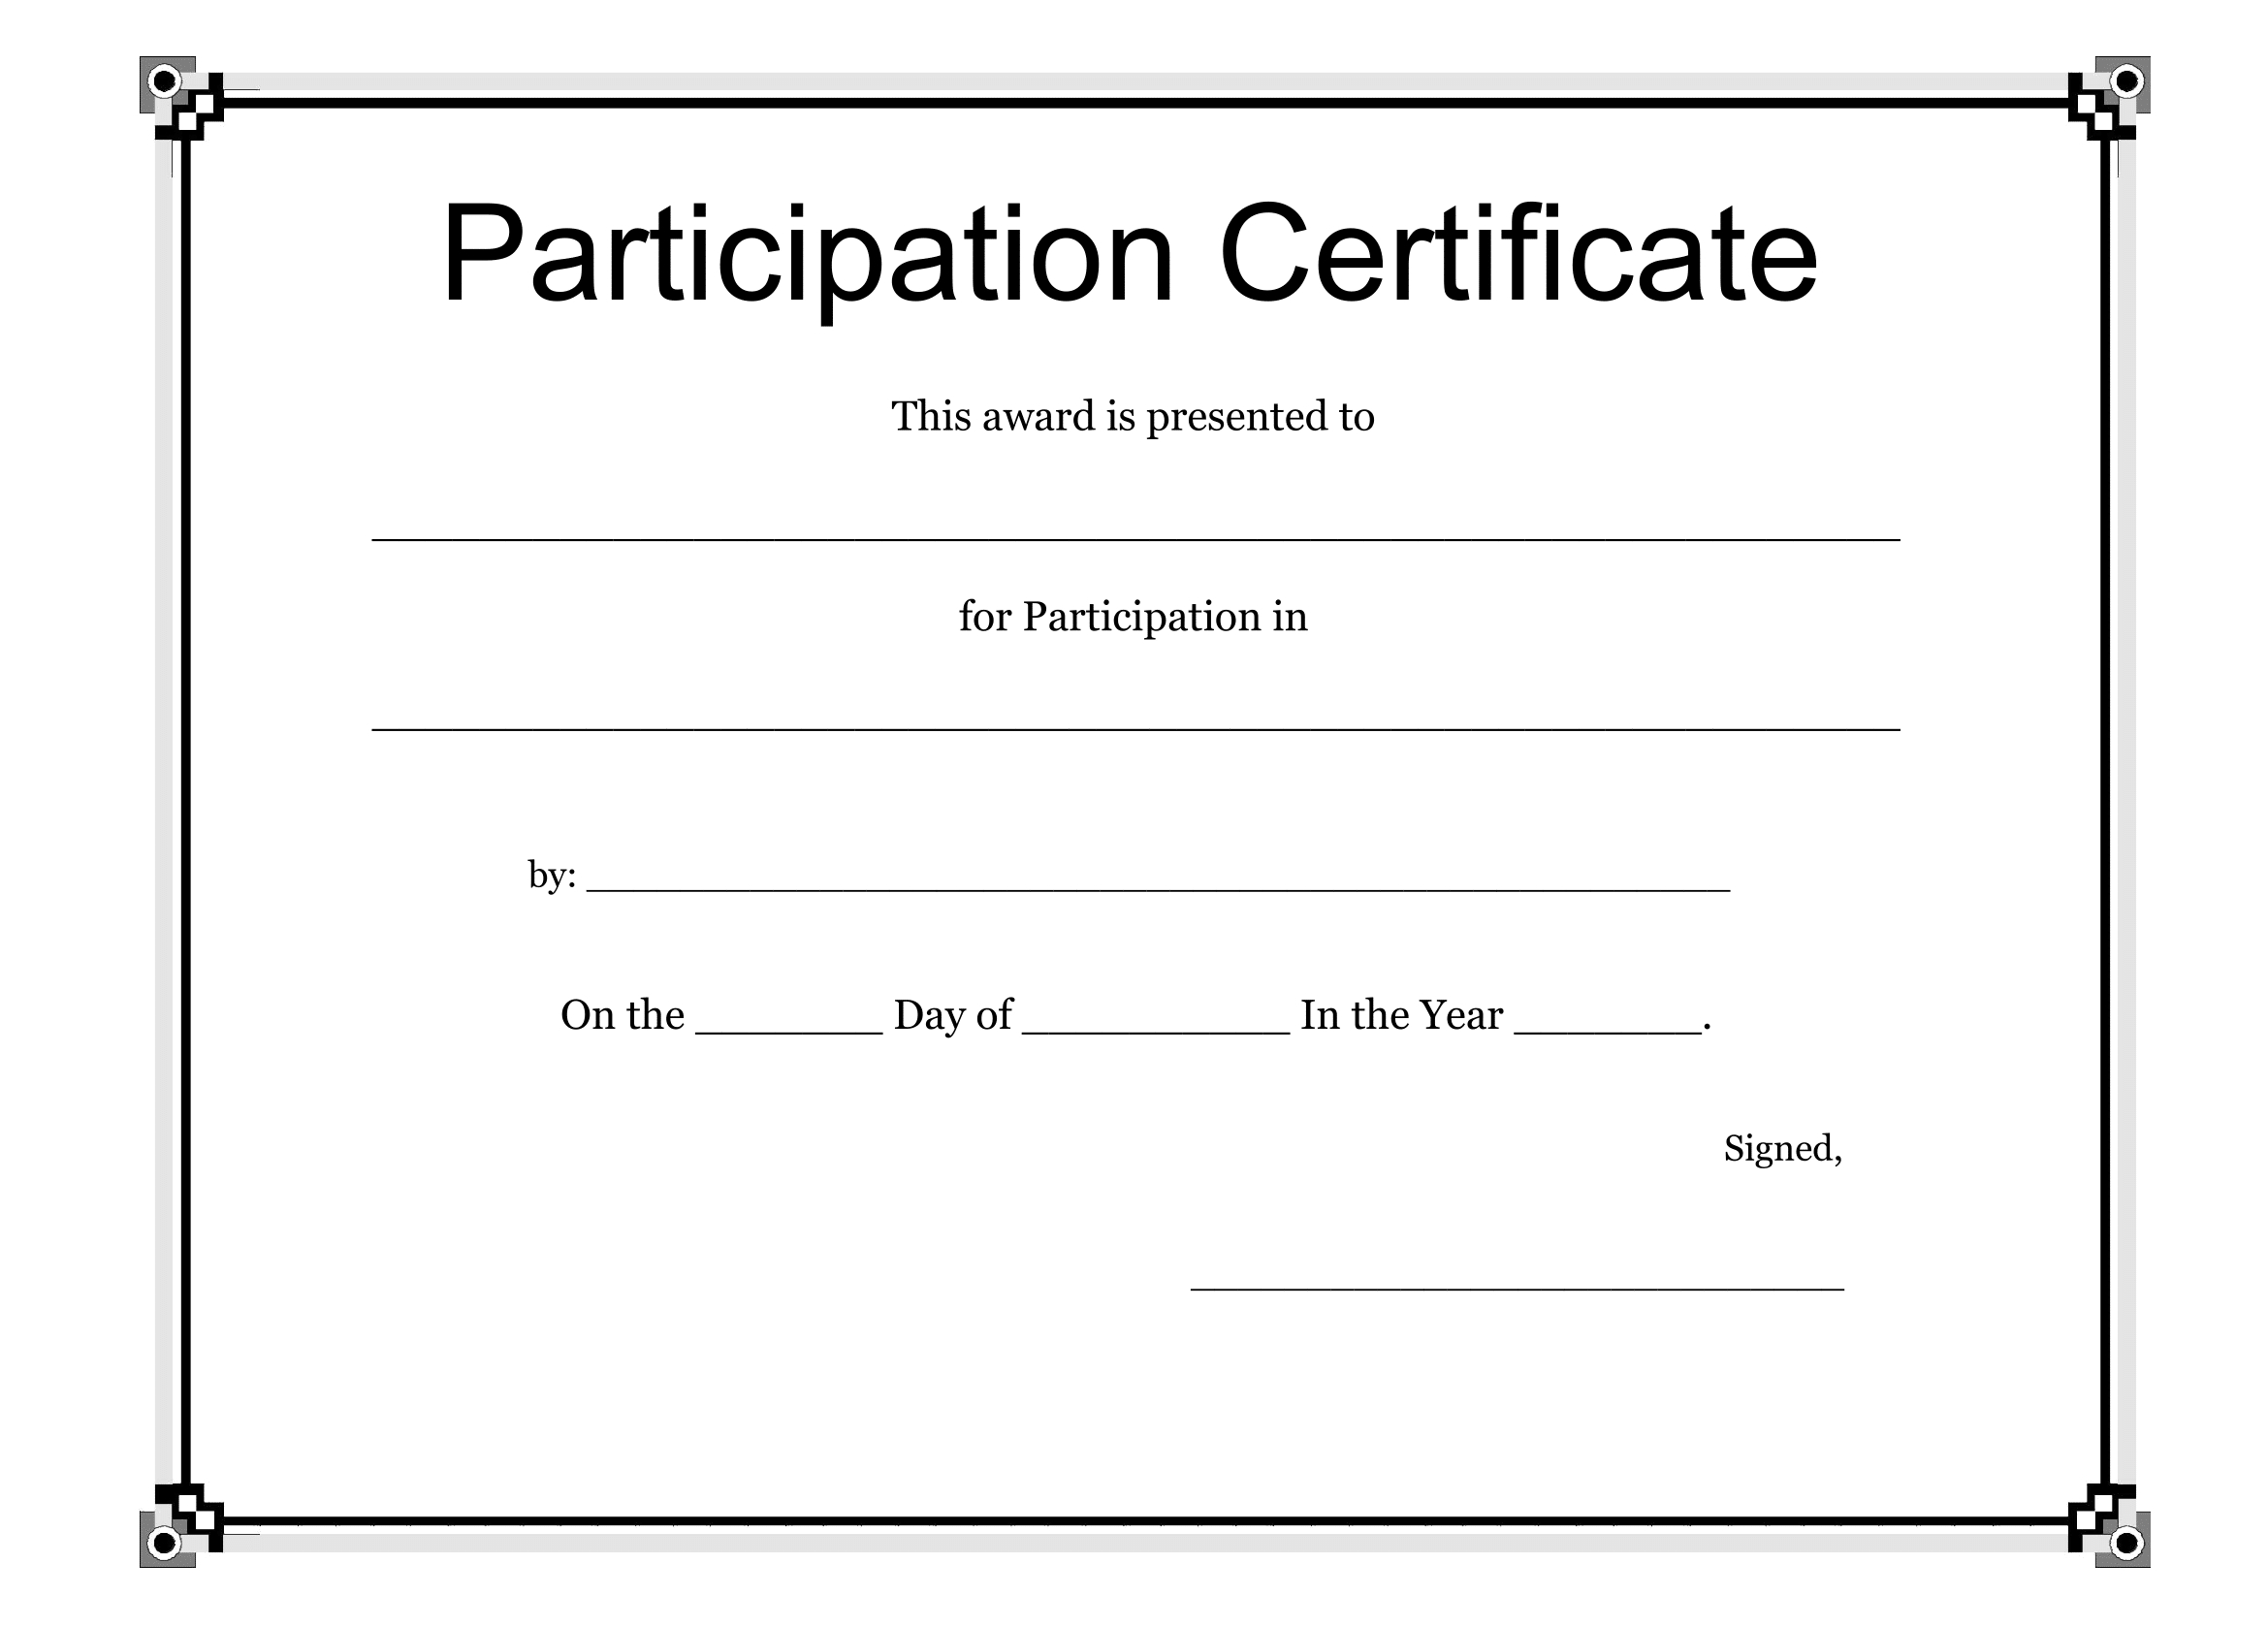 Participation Certificate Template  Free Download Regarding Certification Of Participation Free Template